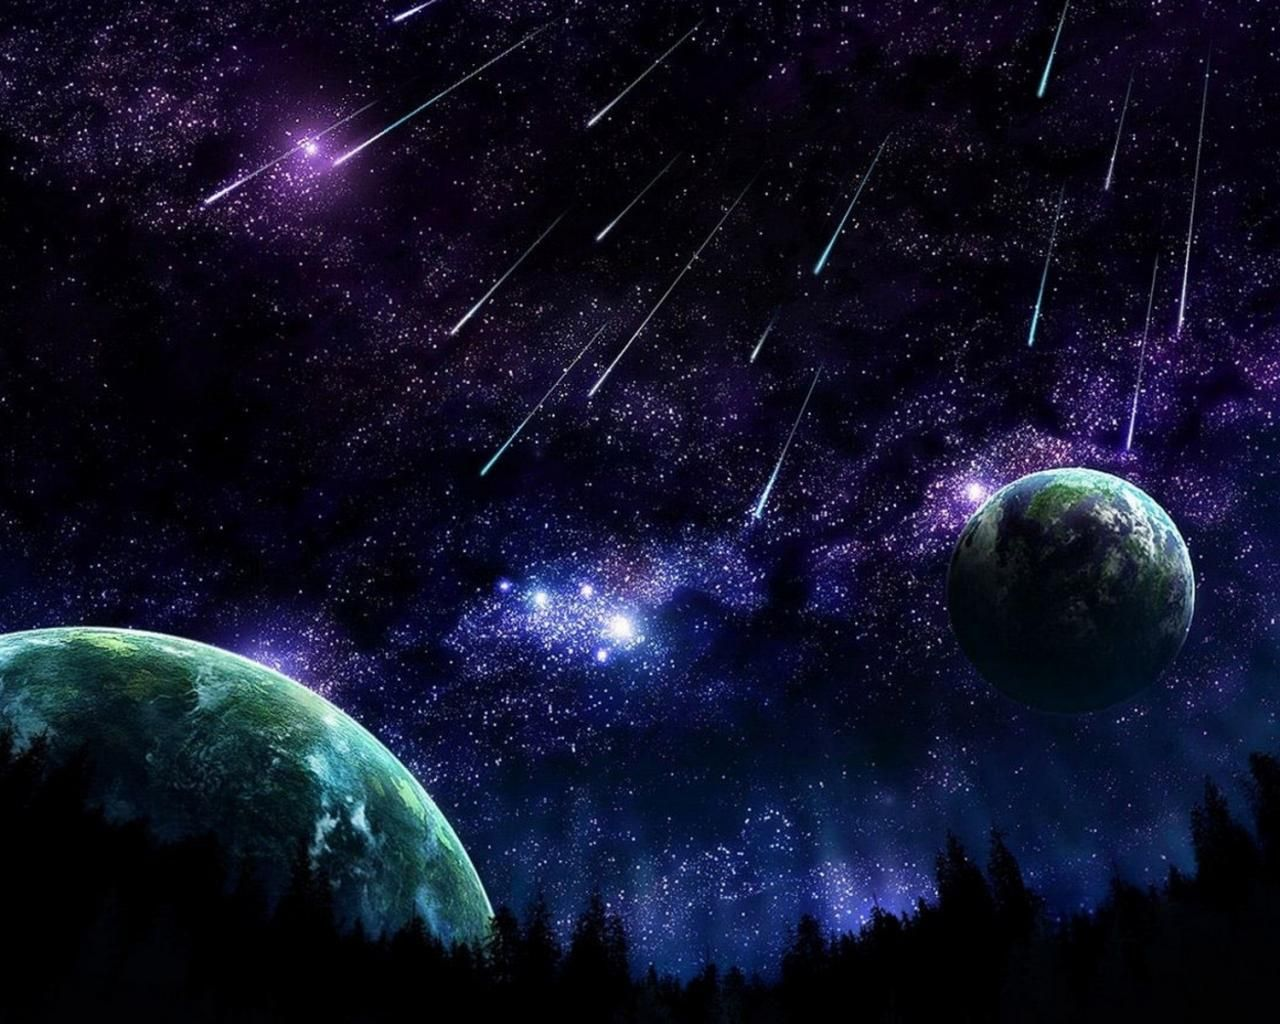 Meteor Shower Meteor Shower Hd Wallpaper Hd Wallpaper